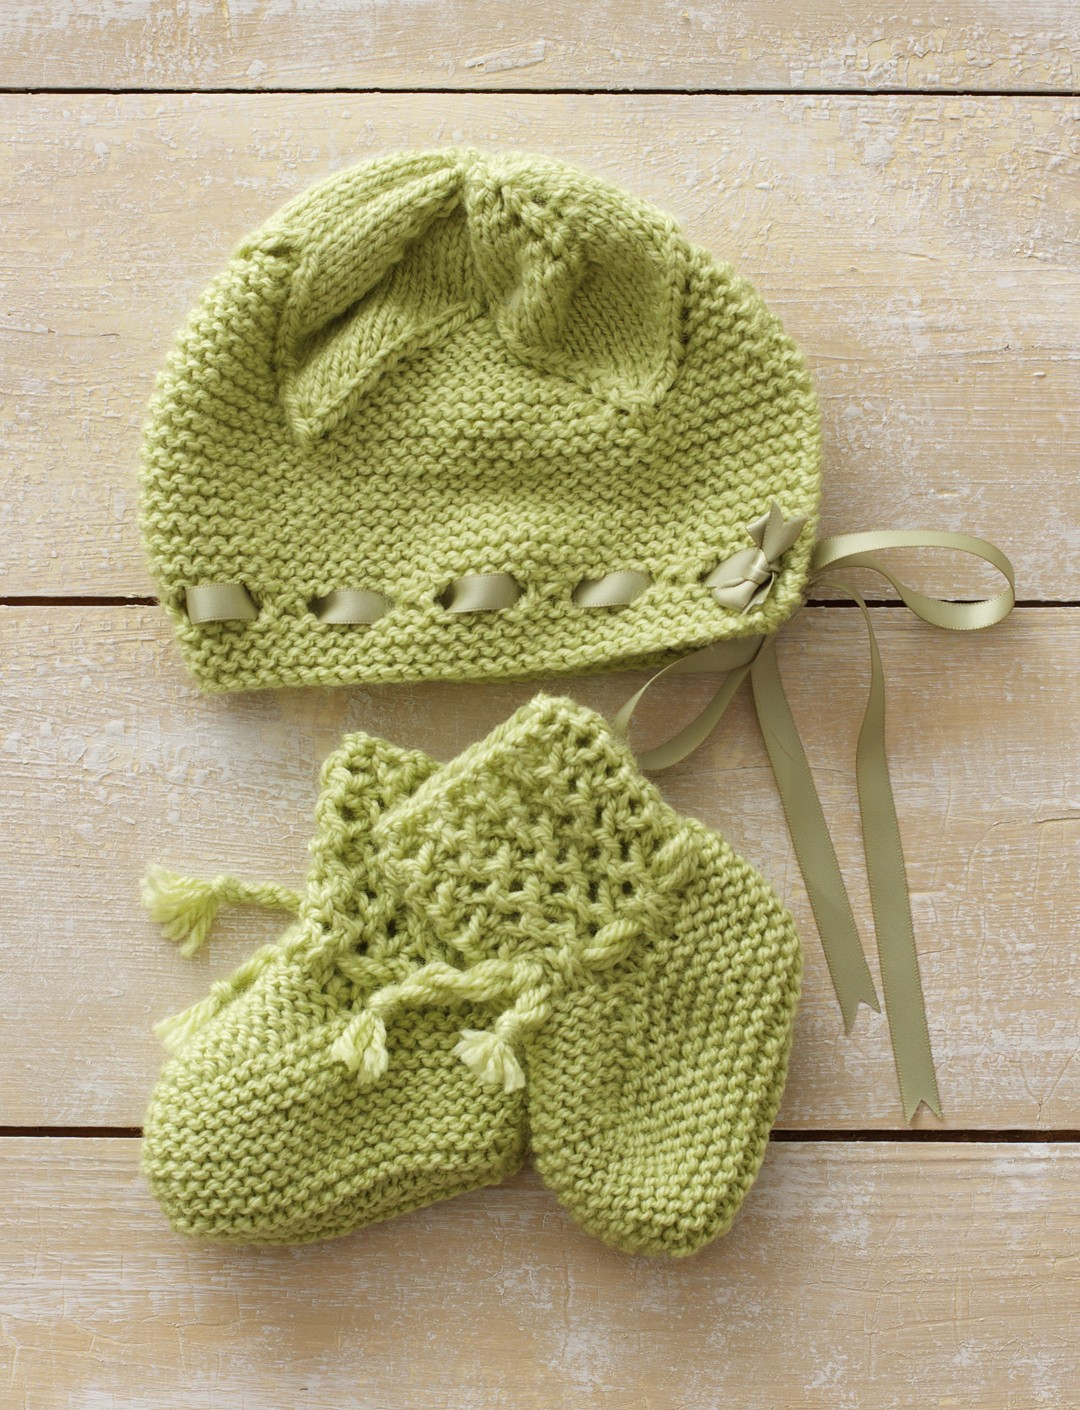 Knitting Pattern Leaf Lace : Bernat Leaf and Lace Set, Knit Pattern Yarnspirations